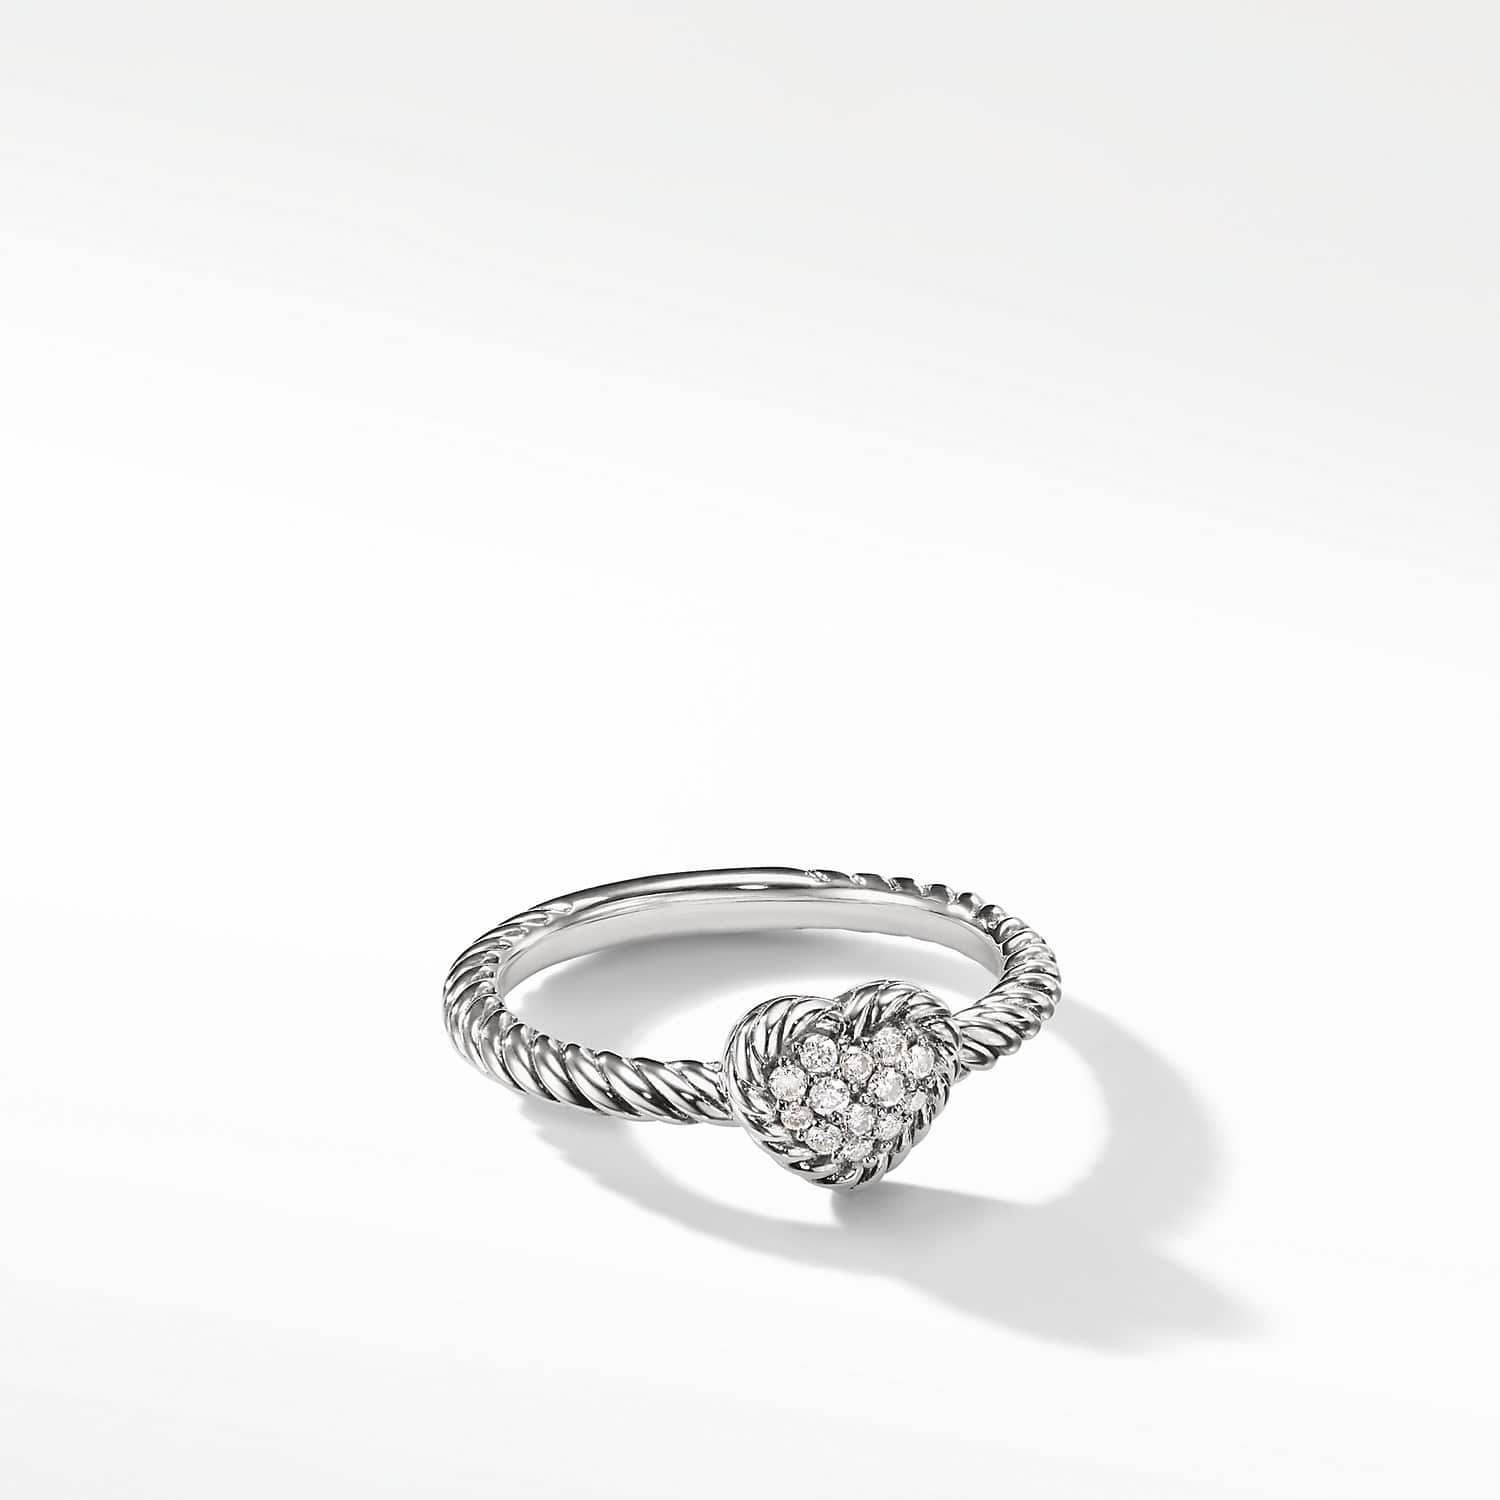 0ced003ed0ef60 Petite Pave Heart Ring with Diamonds Product Image